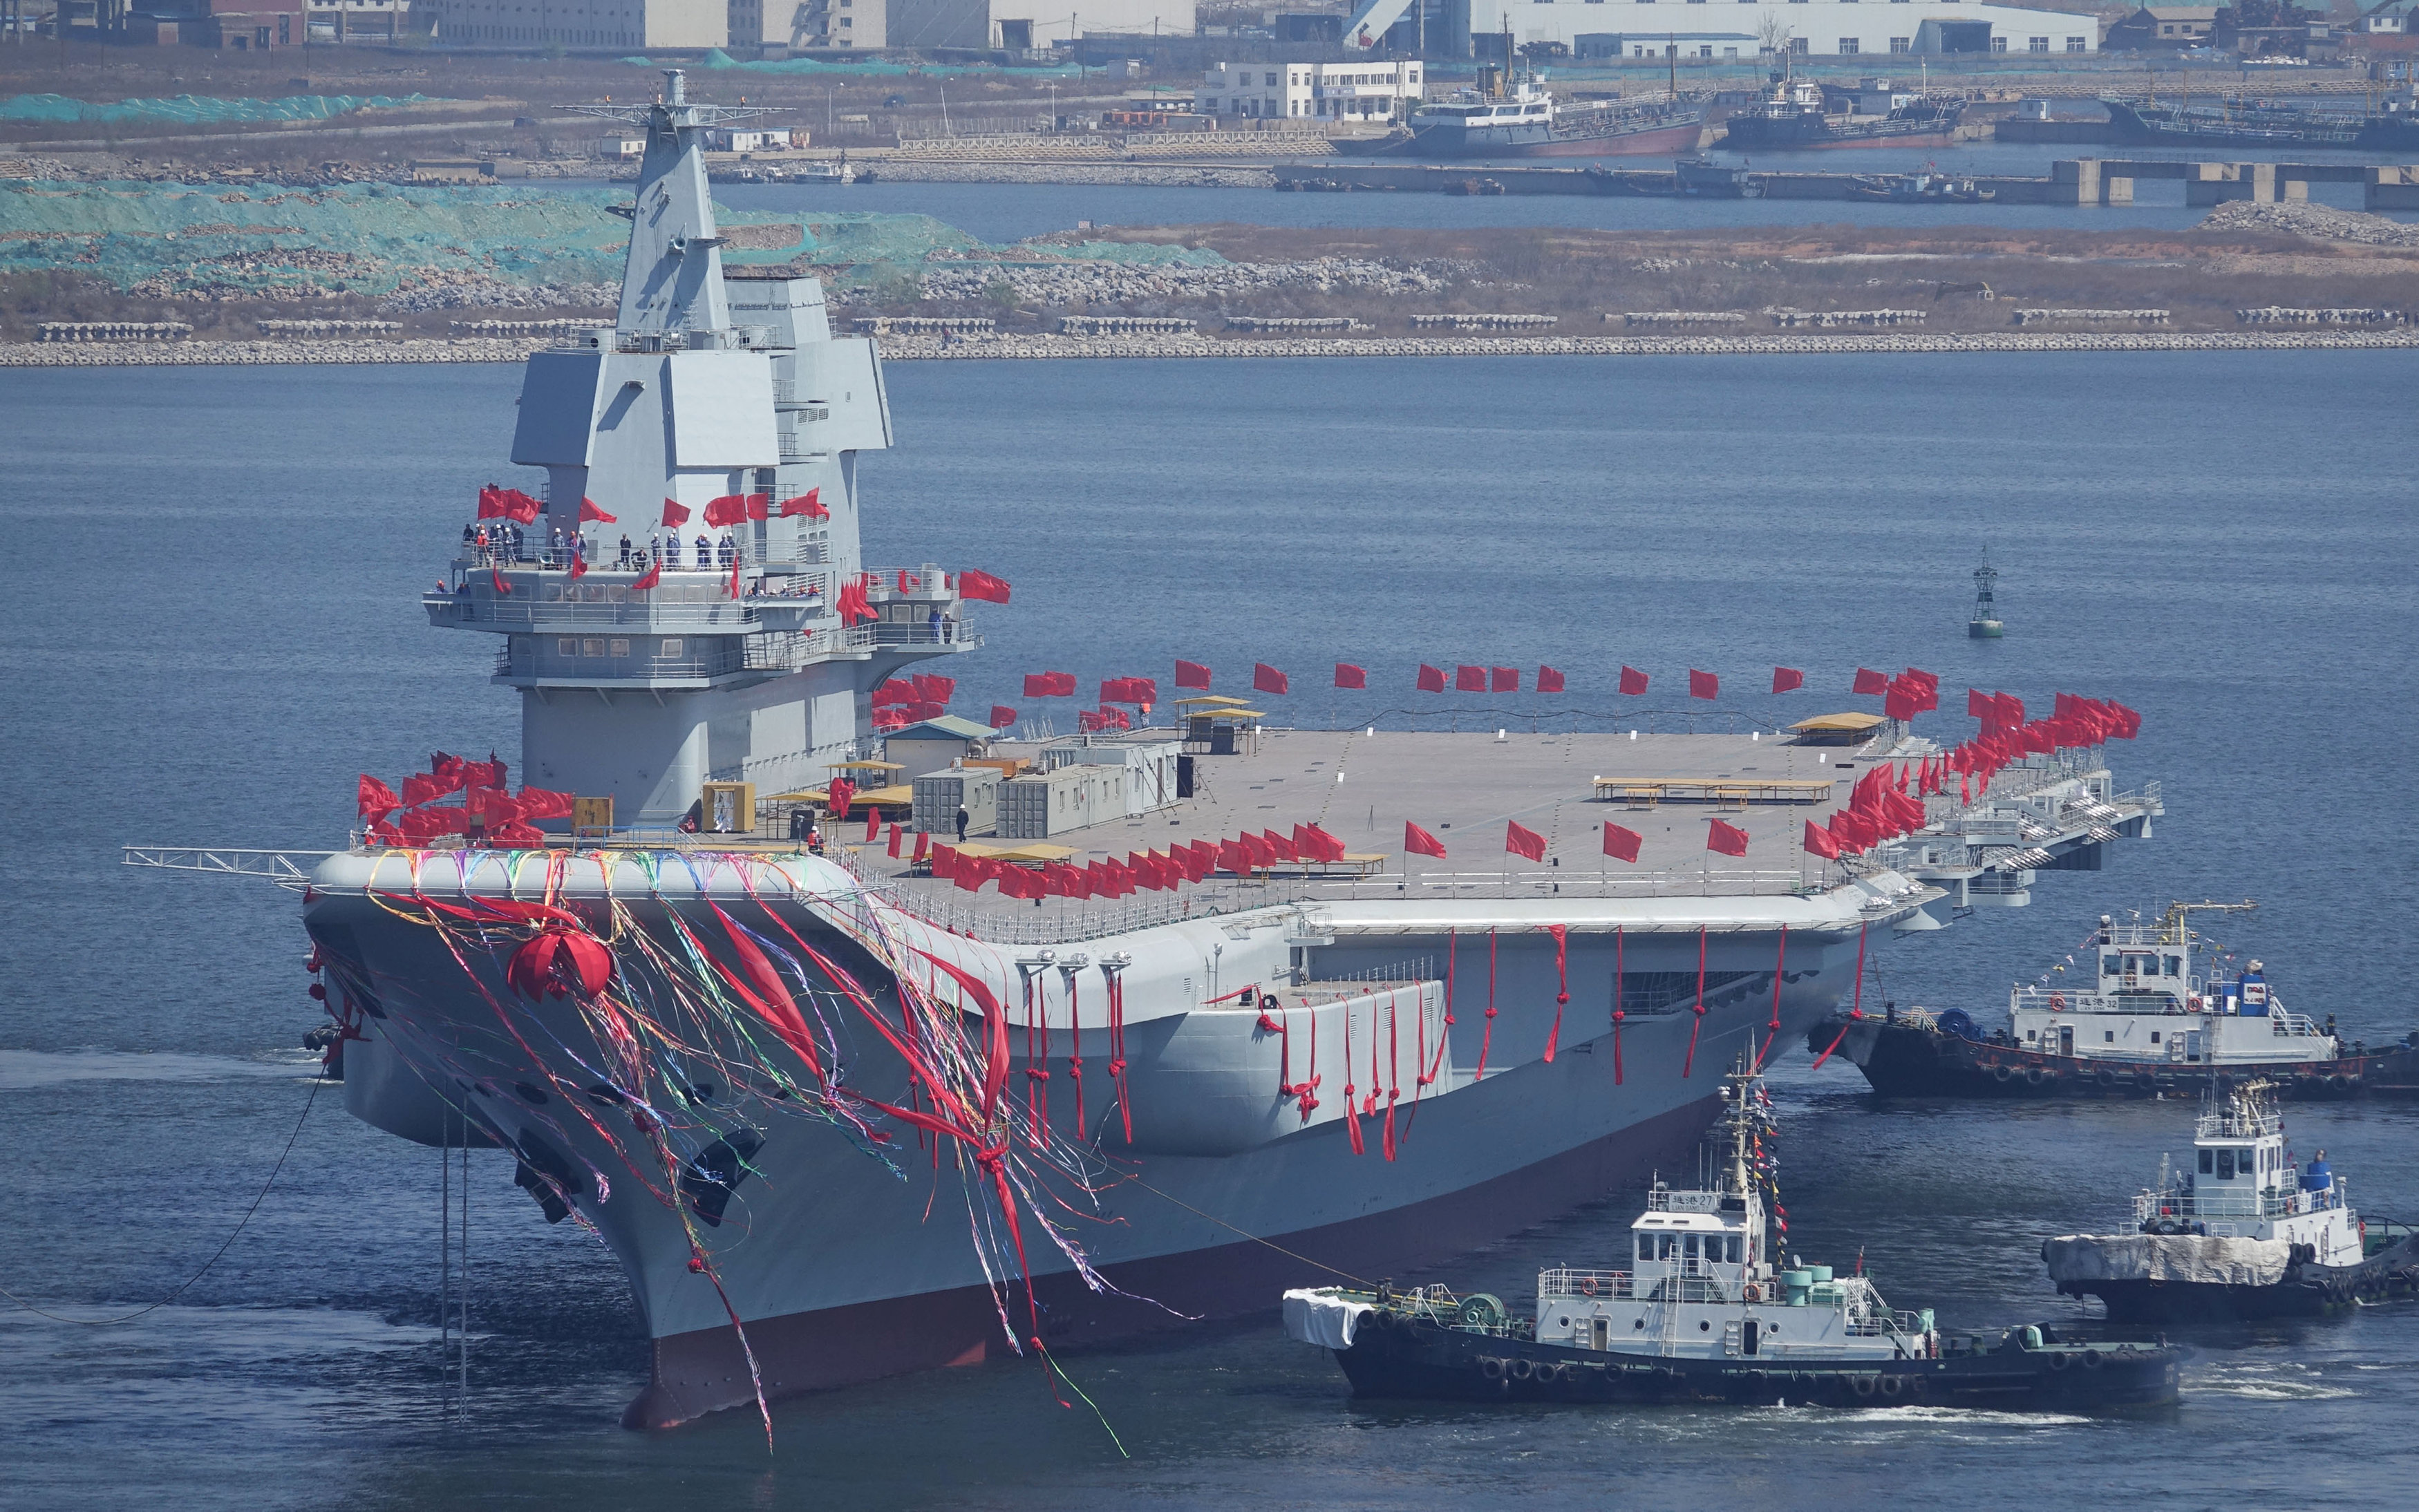 China's first domestically built aircraft carrier is seen during its launching ceremony in Dalian, Liaoning province, China, April 26, 2017. REUTERS/Stringer